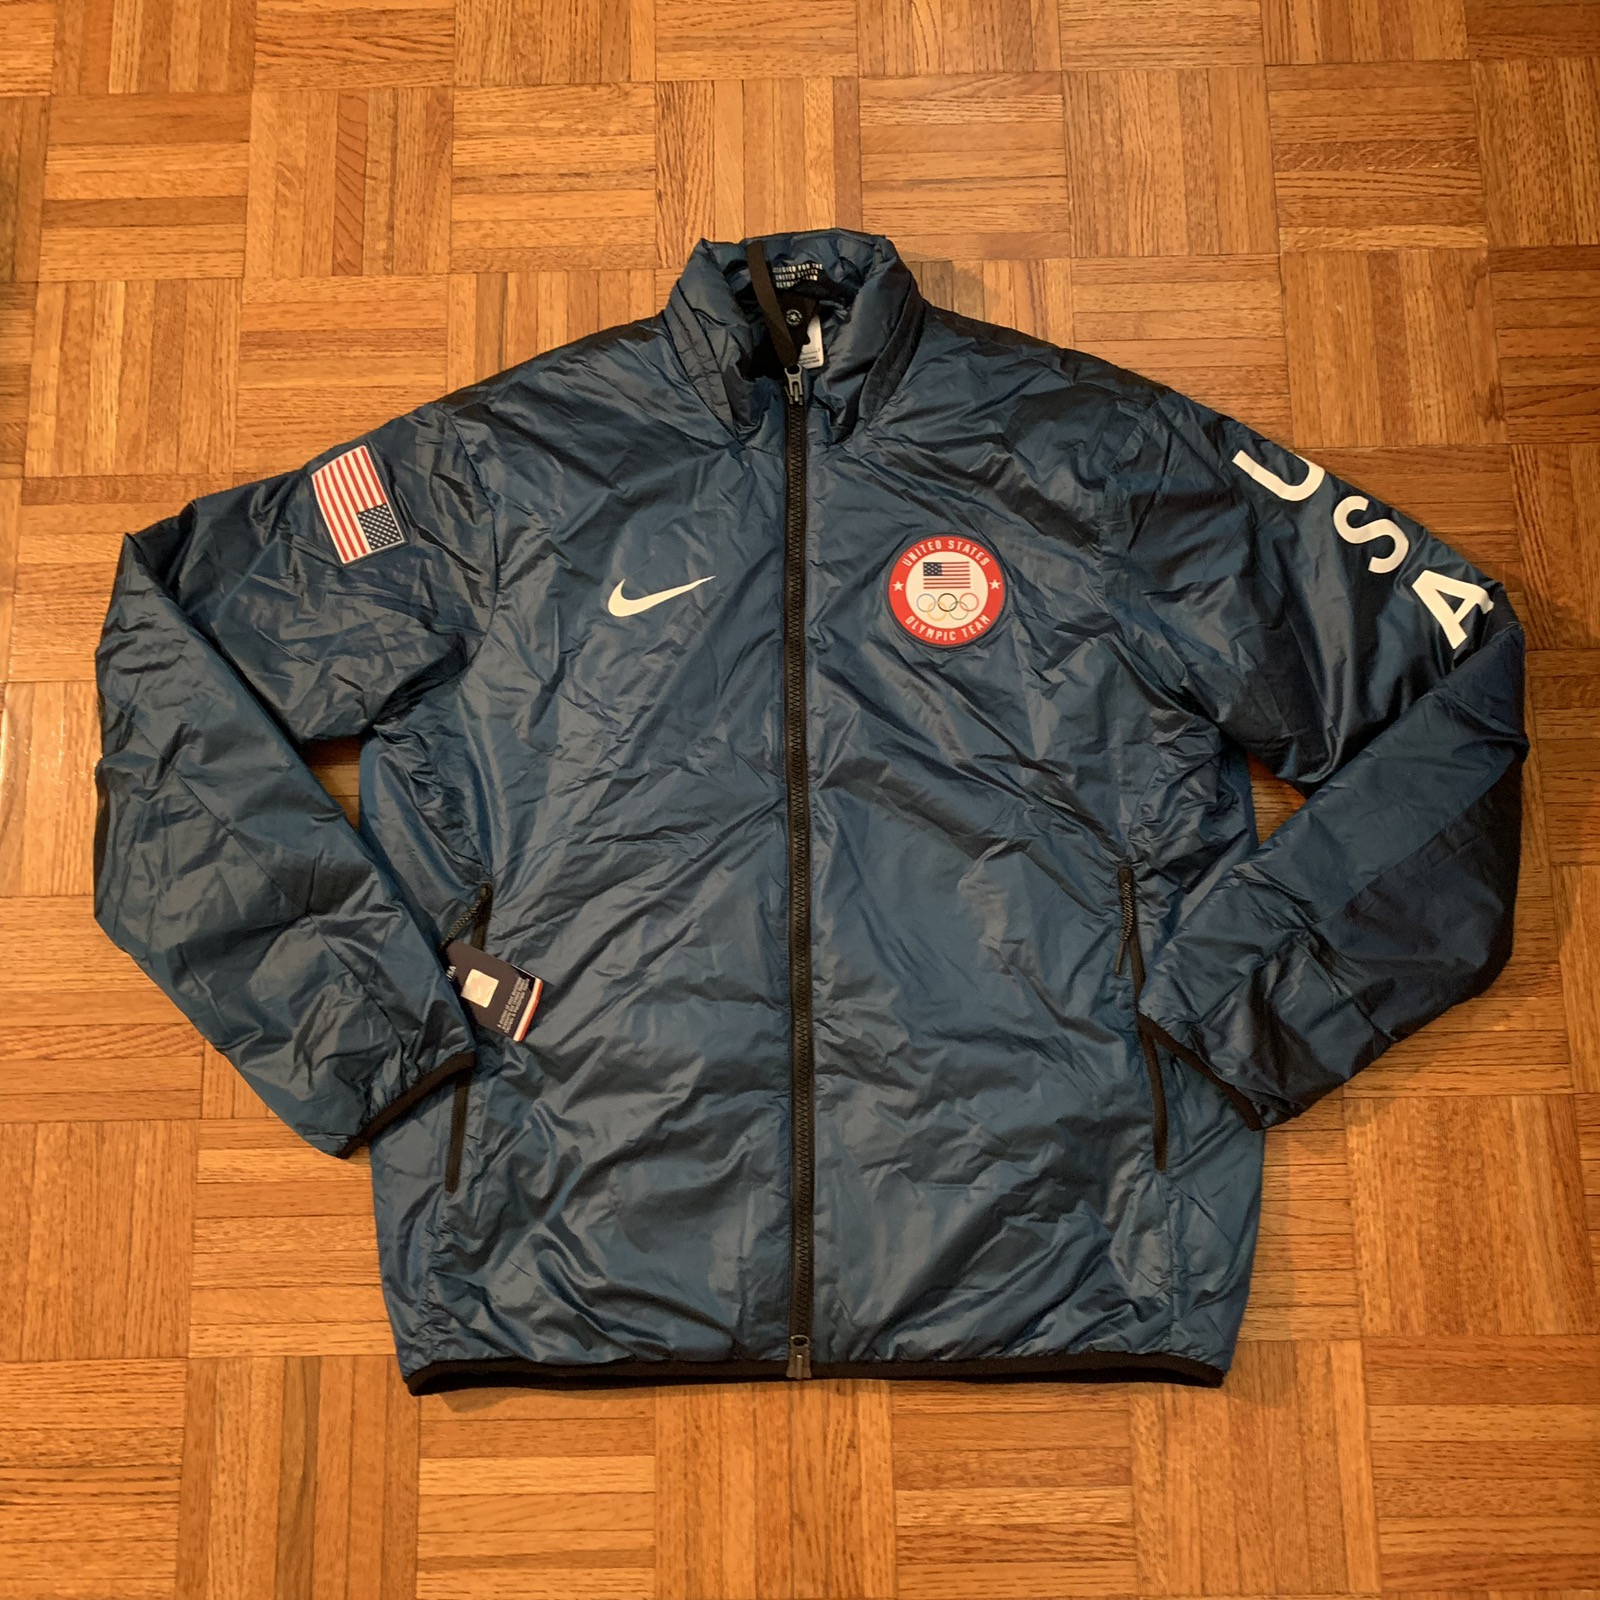 seriamente Cruel cocinar una comida  Nike Nikelab Team Usa Winter Summit Olympic Jacket | Grailed